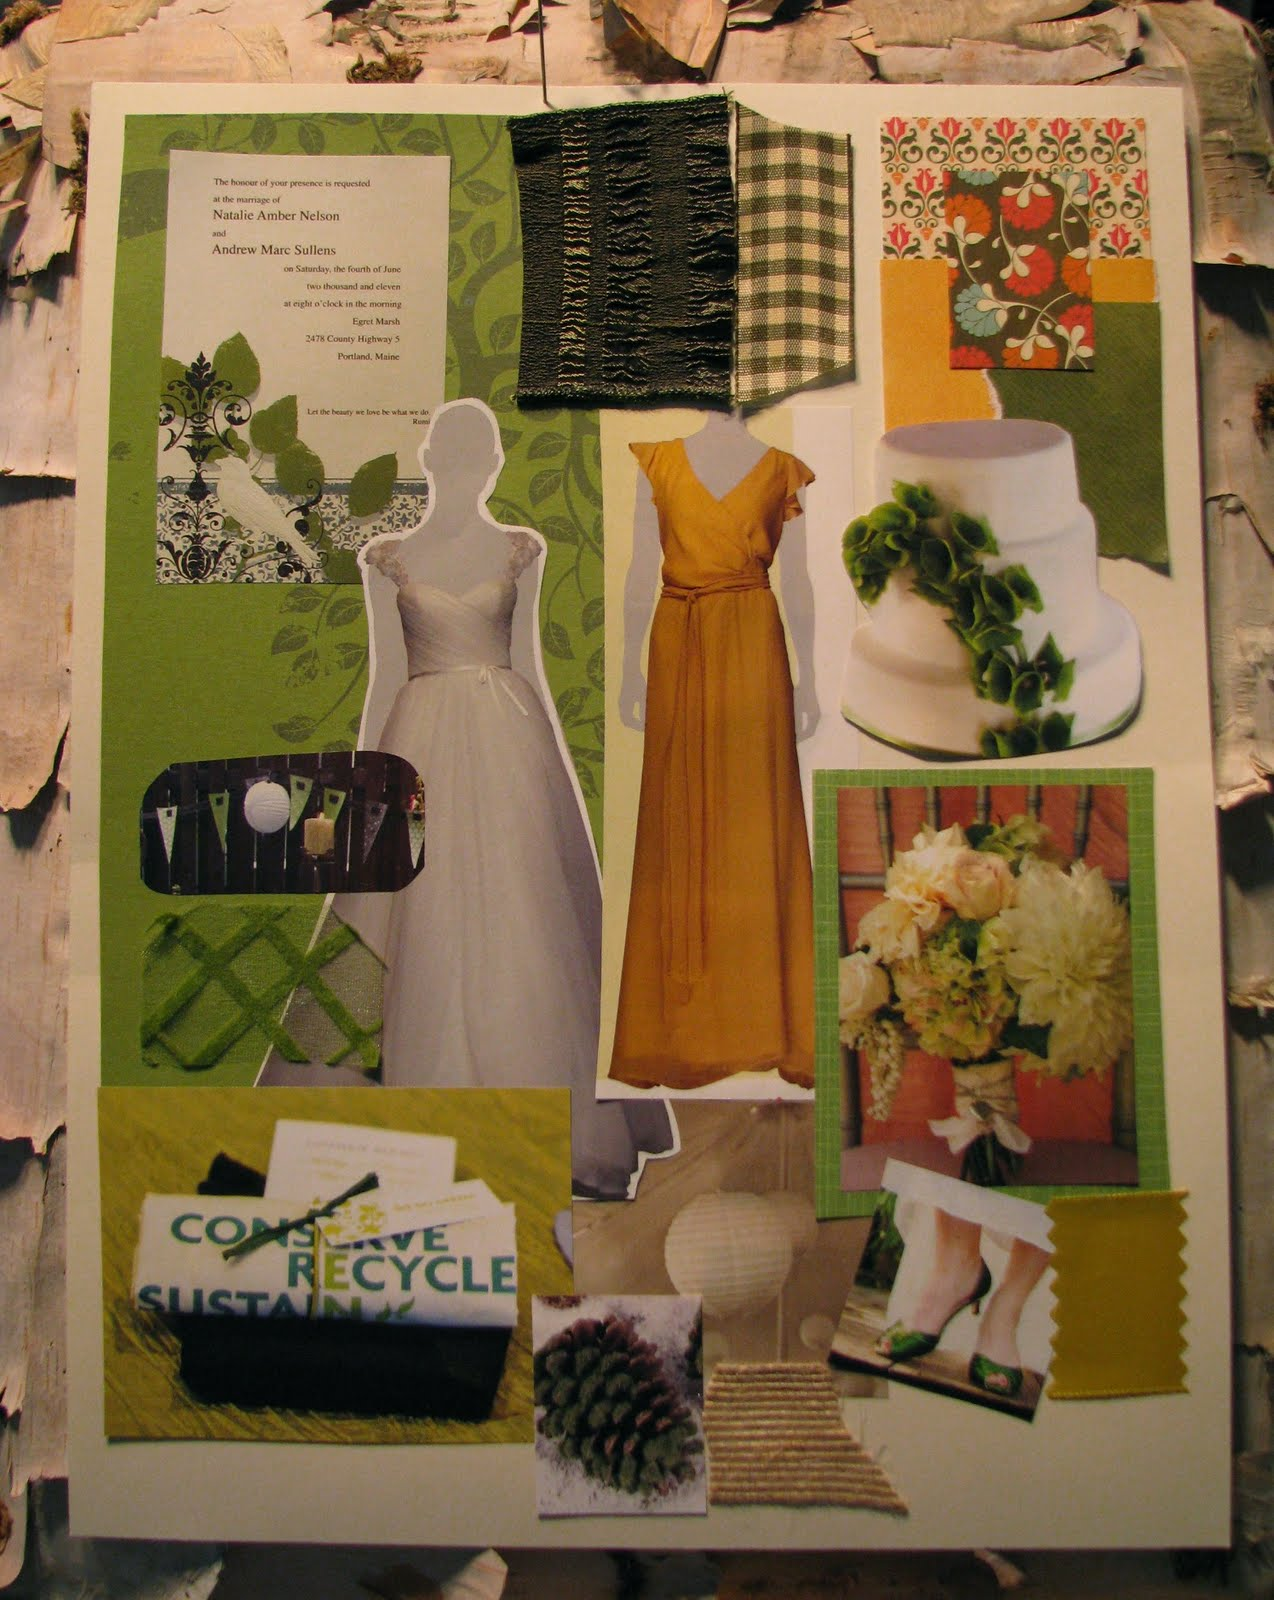 Take Your Vision Board With You When Visit Vendors Go Dress Ping Chat Bridesmaids Etc